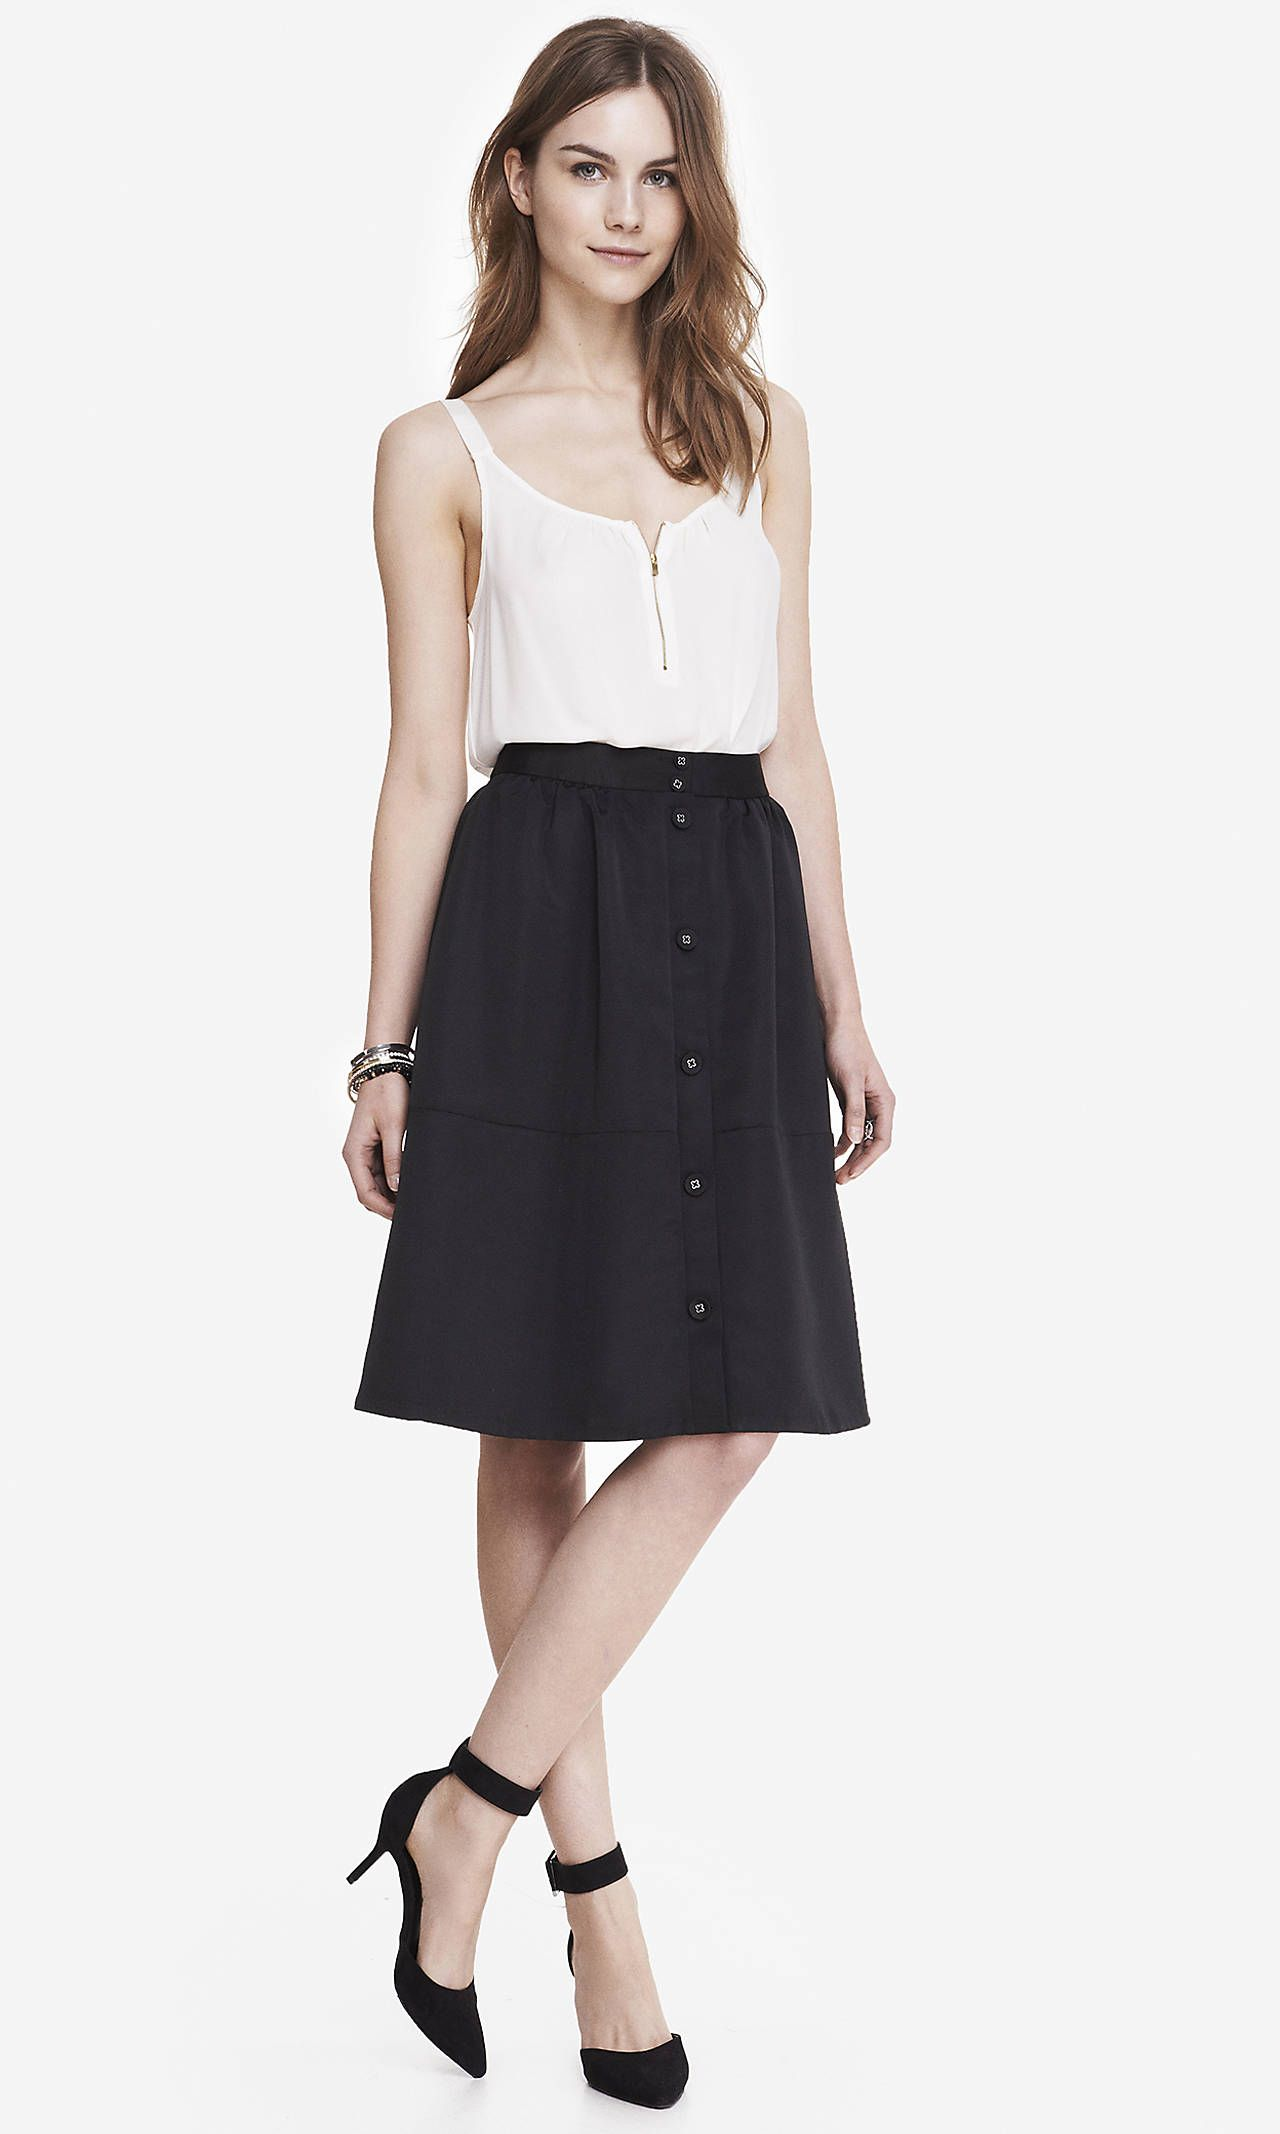 HIGH WAIST BUTTON MIDI SKIRT- BLACK | Express | threads ...